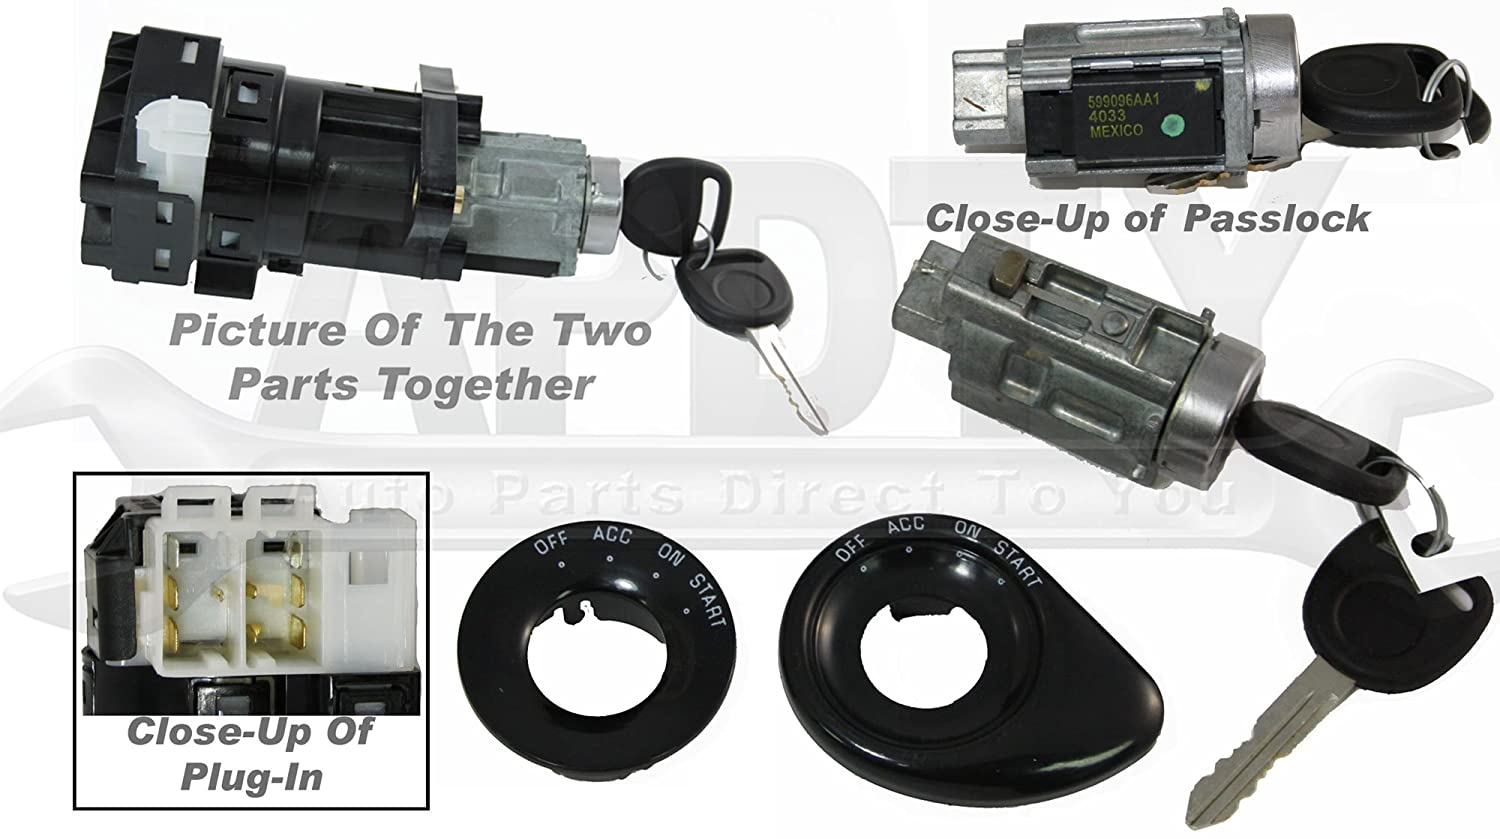 Amazon apdty 035812 035813 ignition lock cylinder starter amazon apdty 035812 035813 ignition lock cylinder starter switch housing combo kit includes 2 new cut keys fixes security light passlock problem aloadofball Gallery